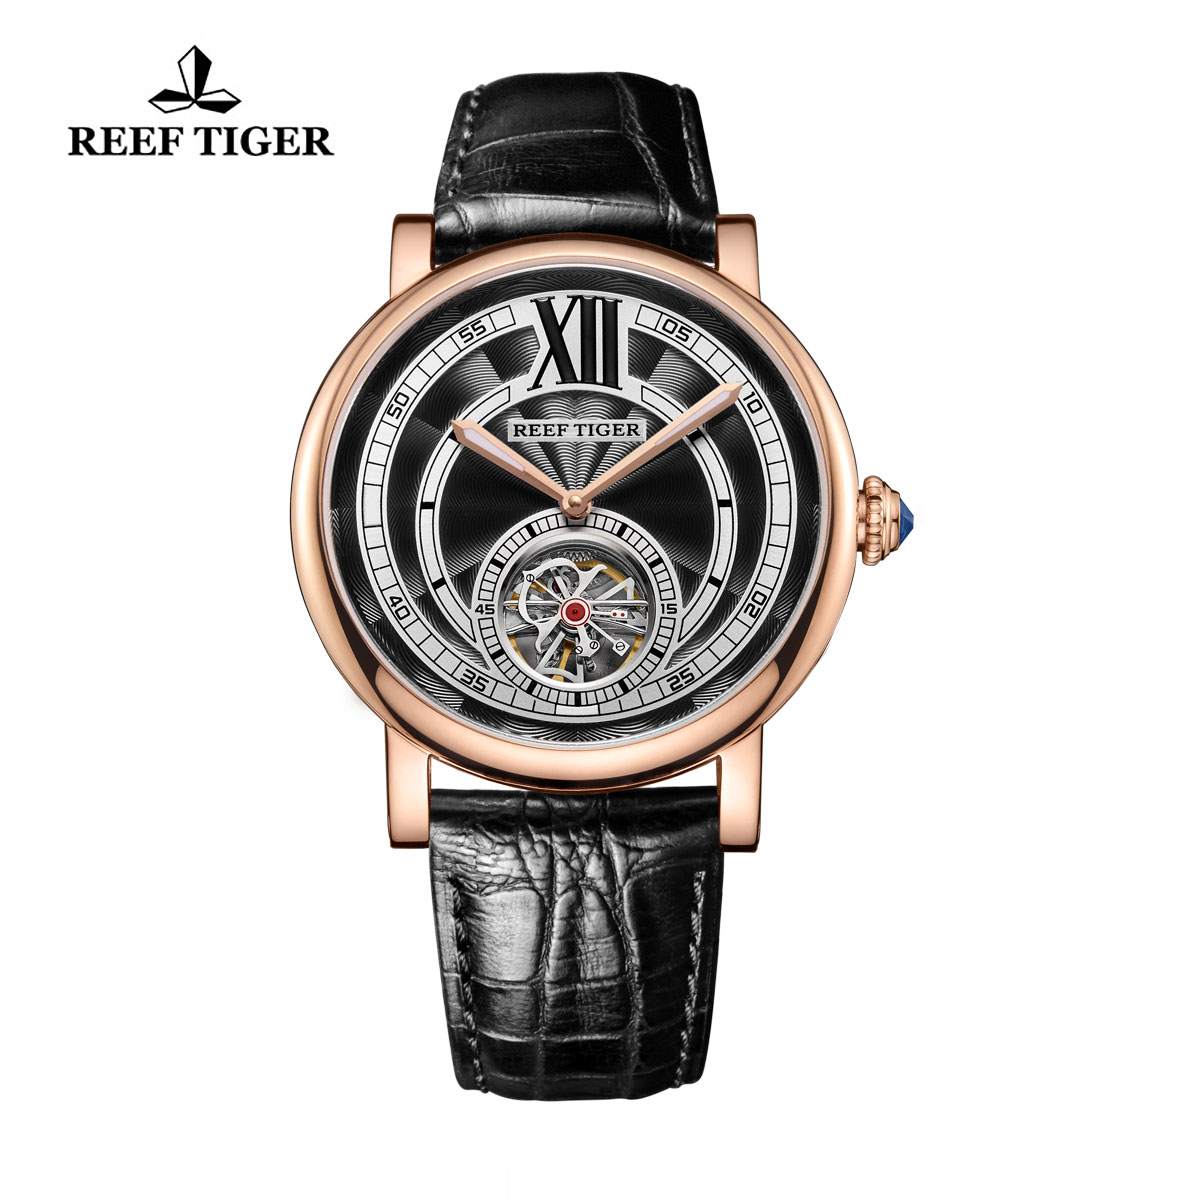 Reef Tiger Royal Crown Luxury Watch with Tourbillon Blue Crystal Crown Calfskin Leather RGA192